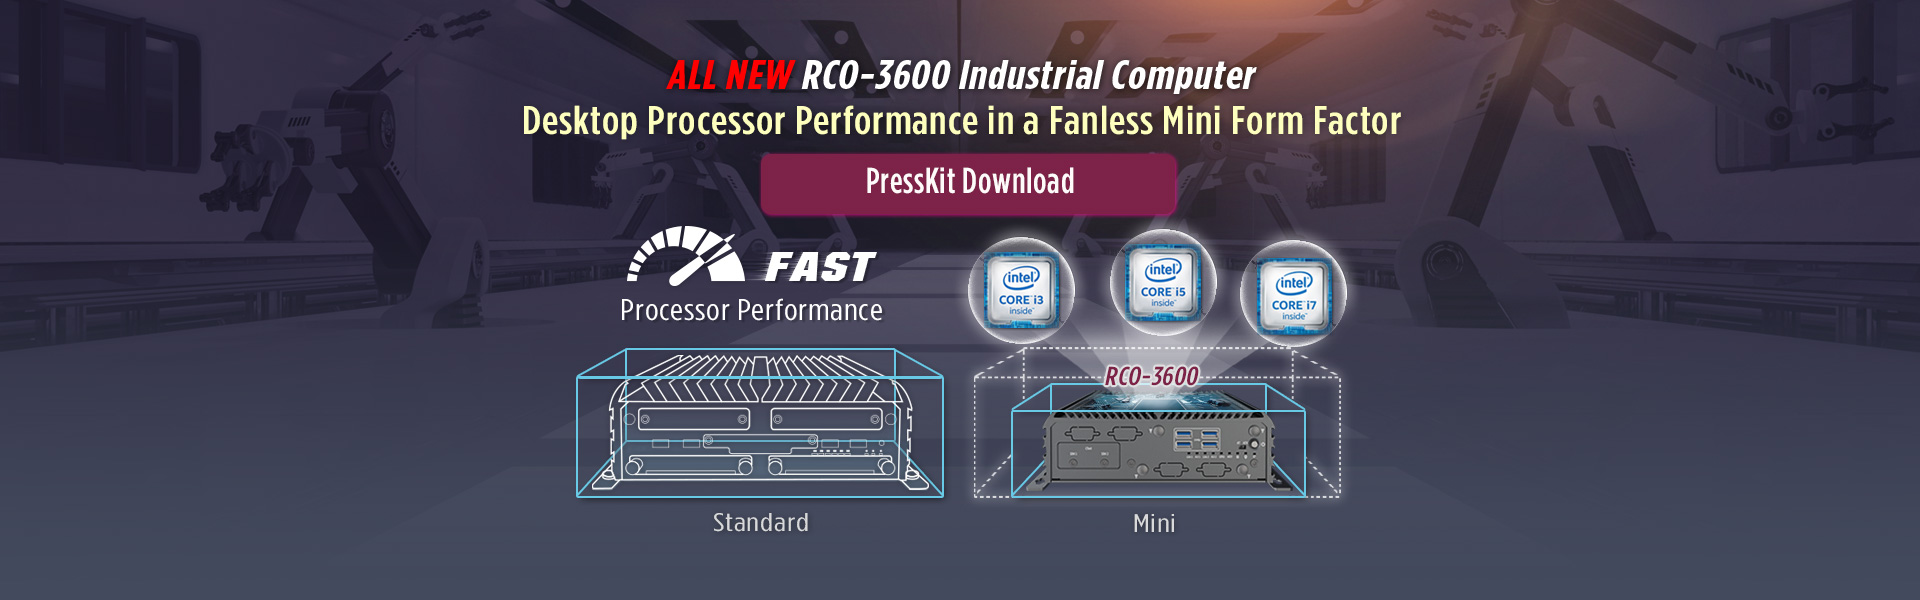 RCO-3600 Series Computer Download